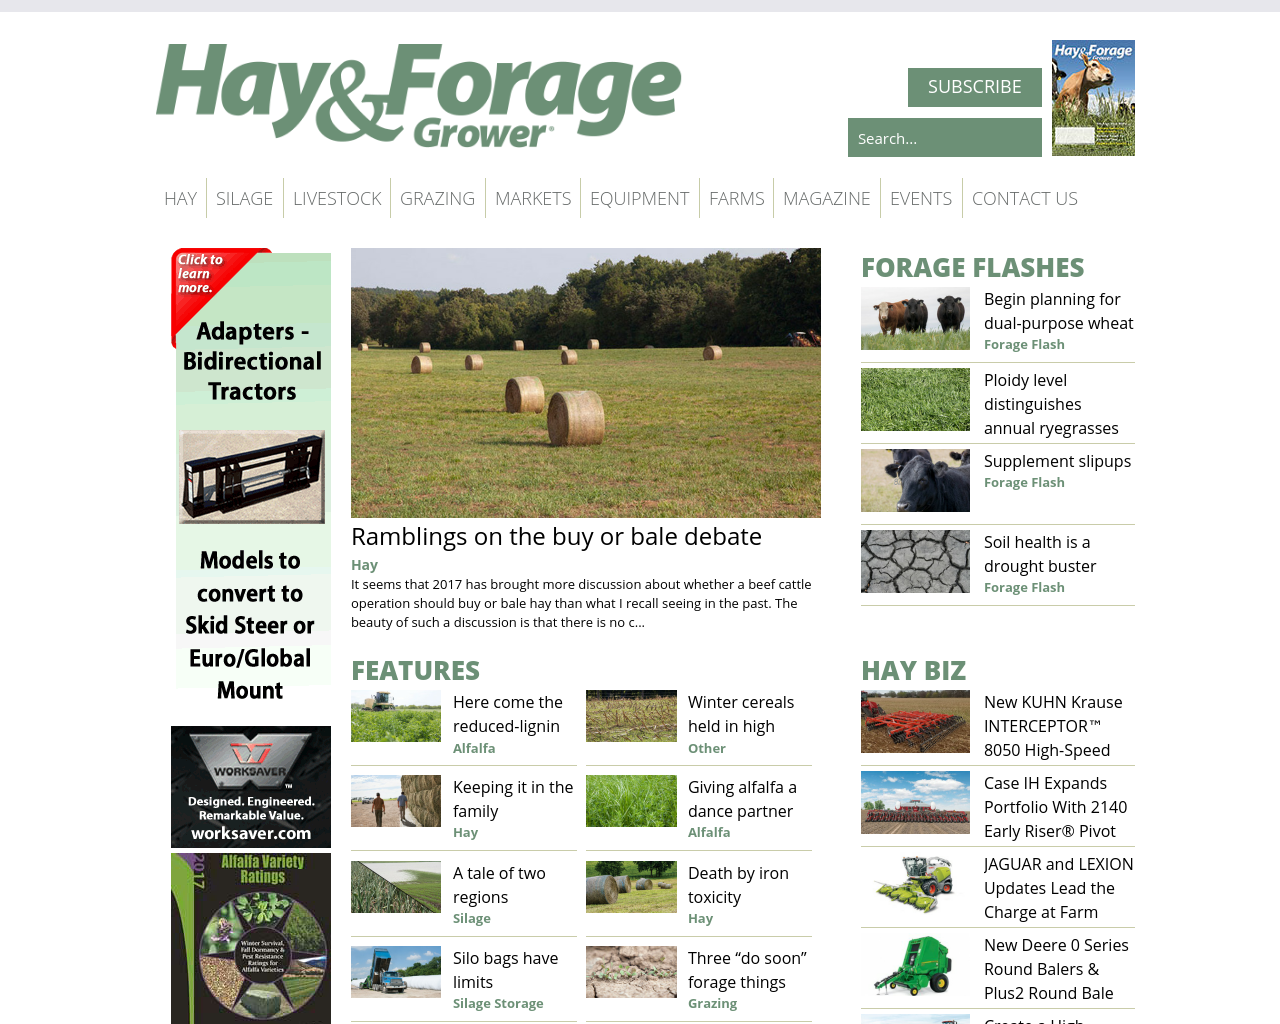 Hay-&-Forage-Grower-Advertising-Reviews-Pricing